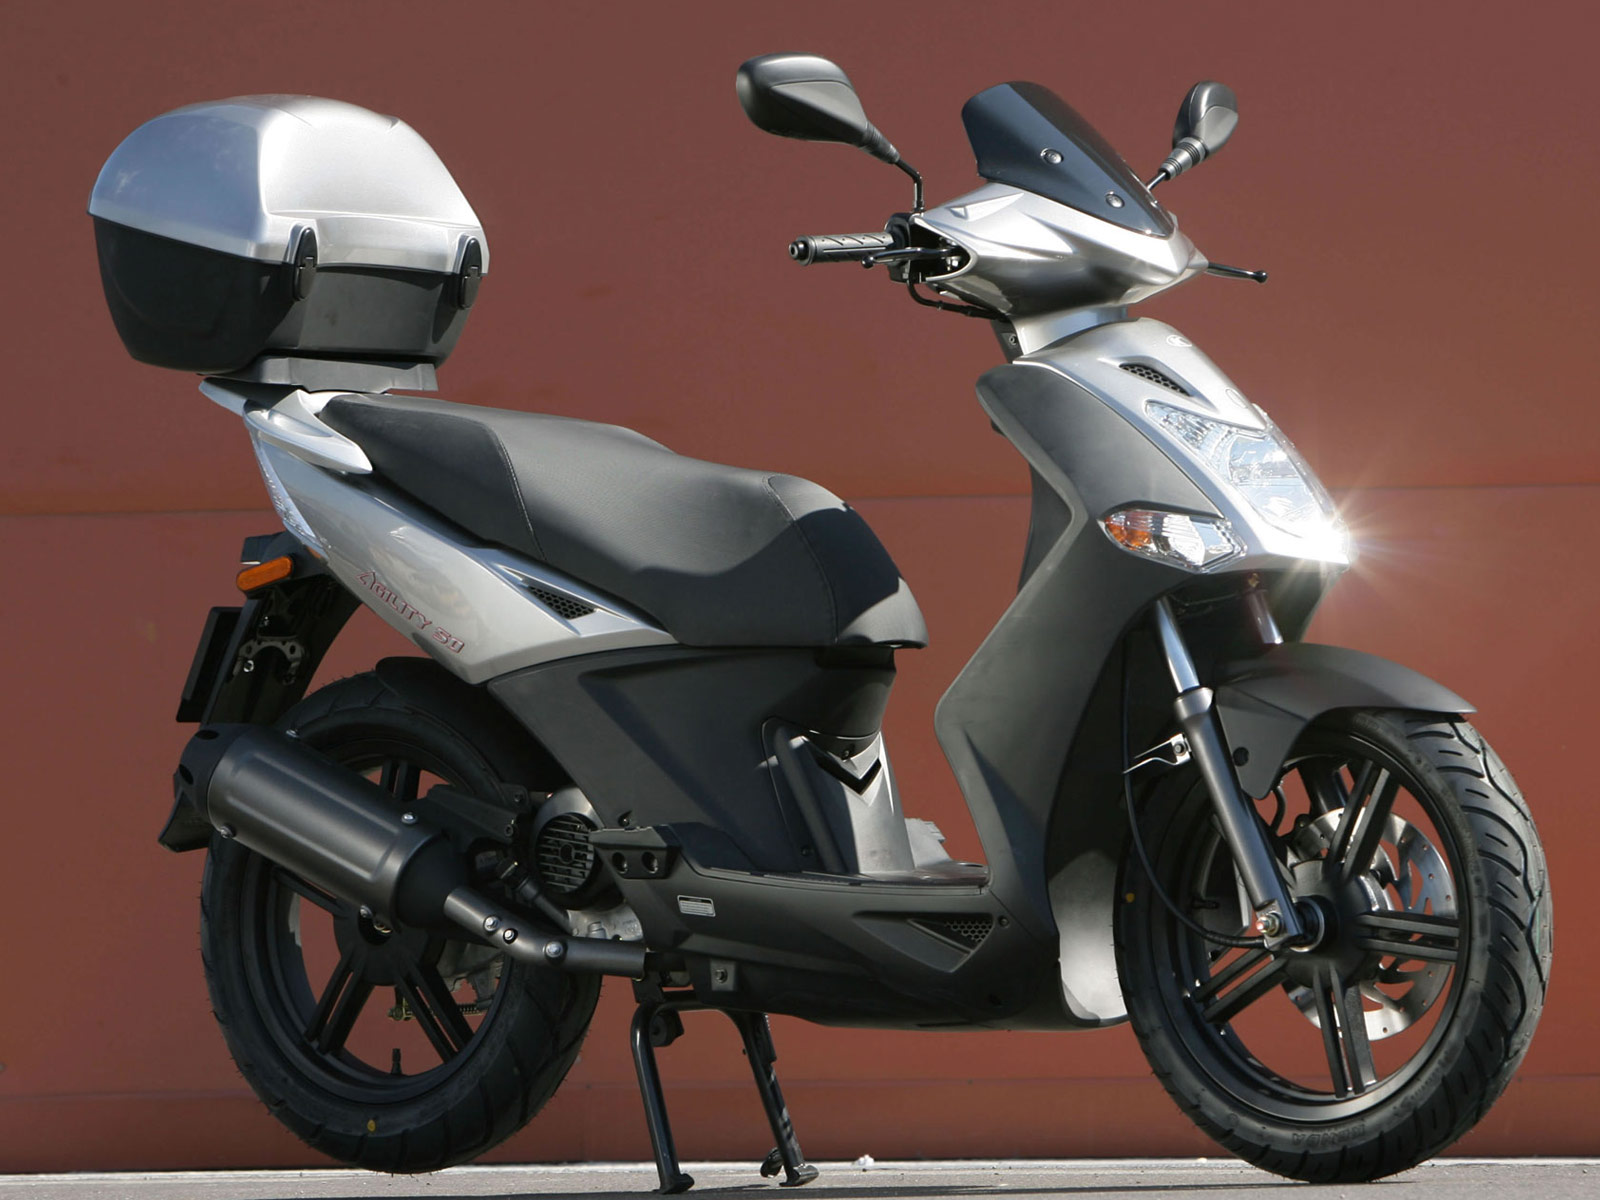 2012 kymco agility city 50 4t scooter picture specs. Black Bedroom Furniture Sets. Home Design Ideas